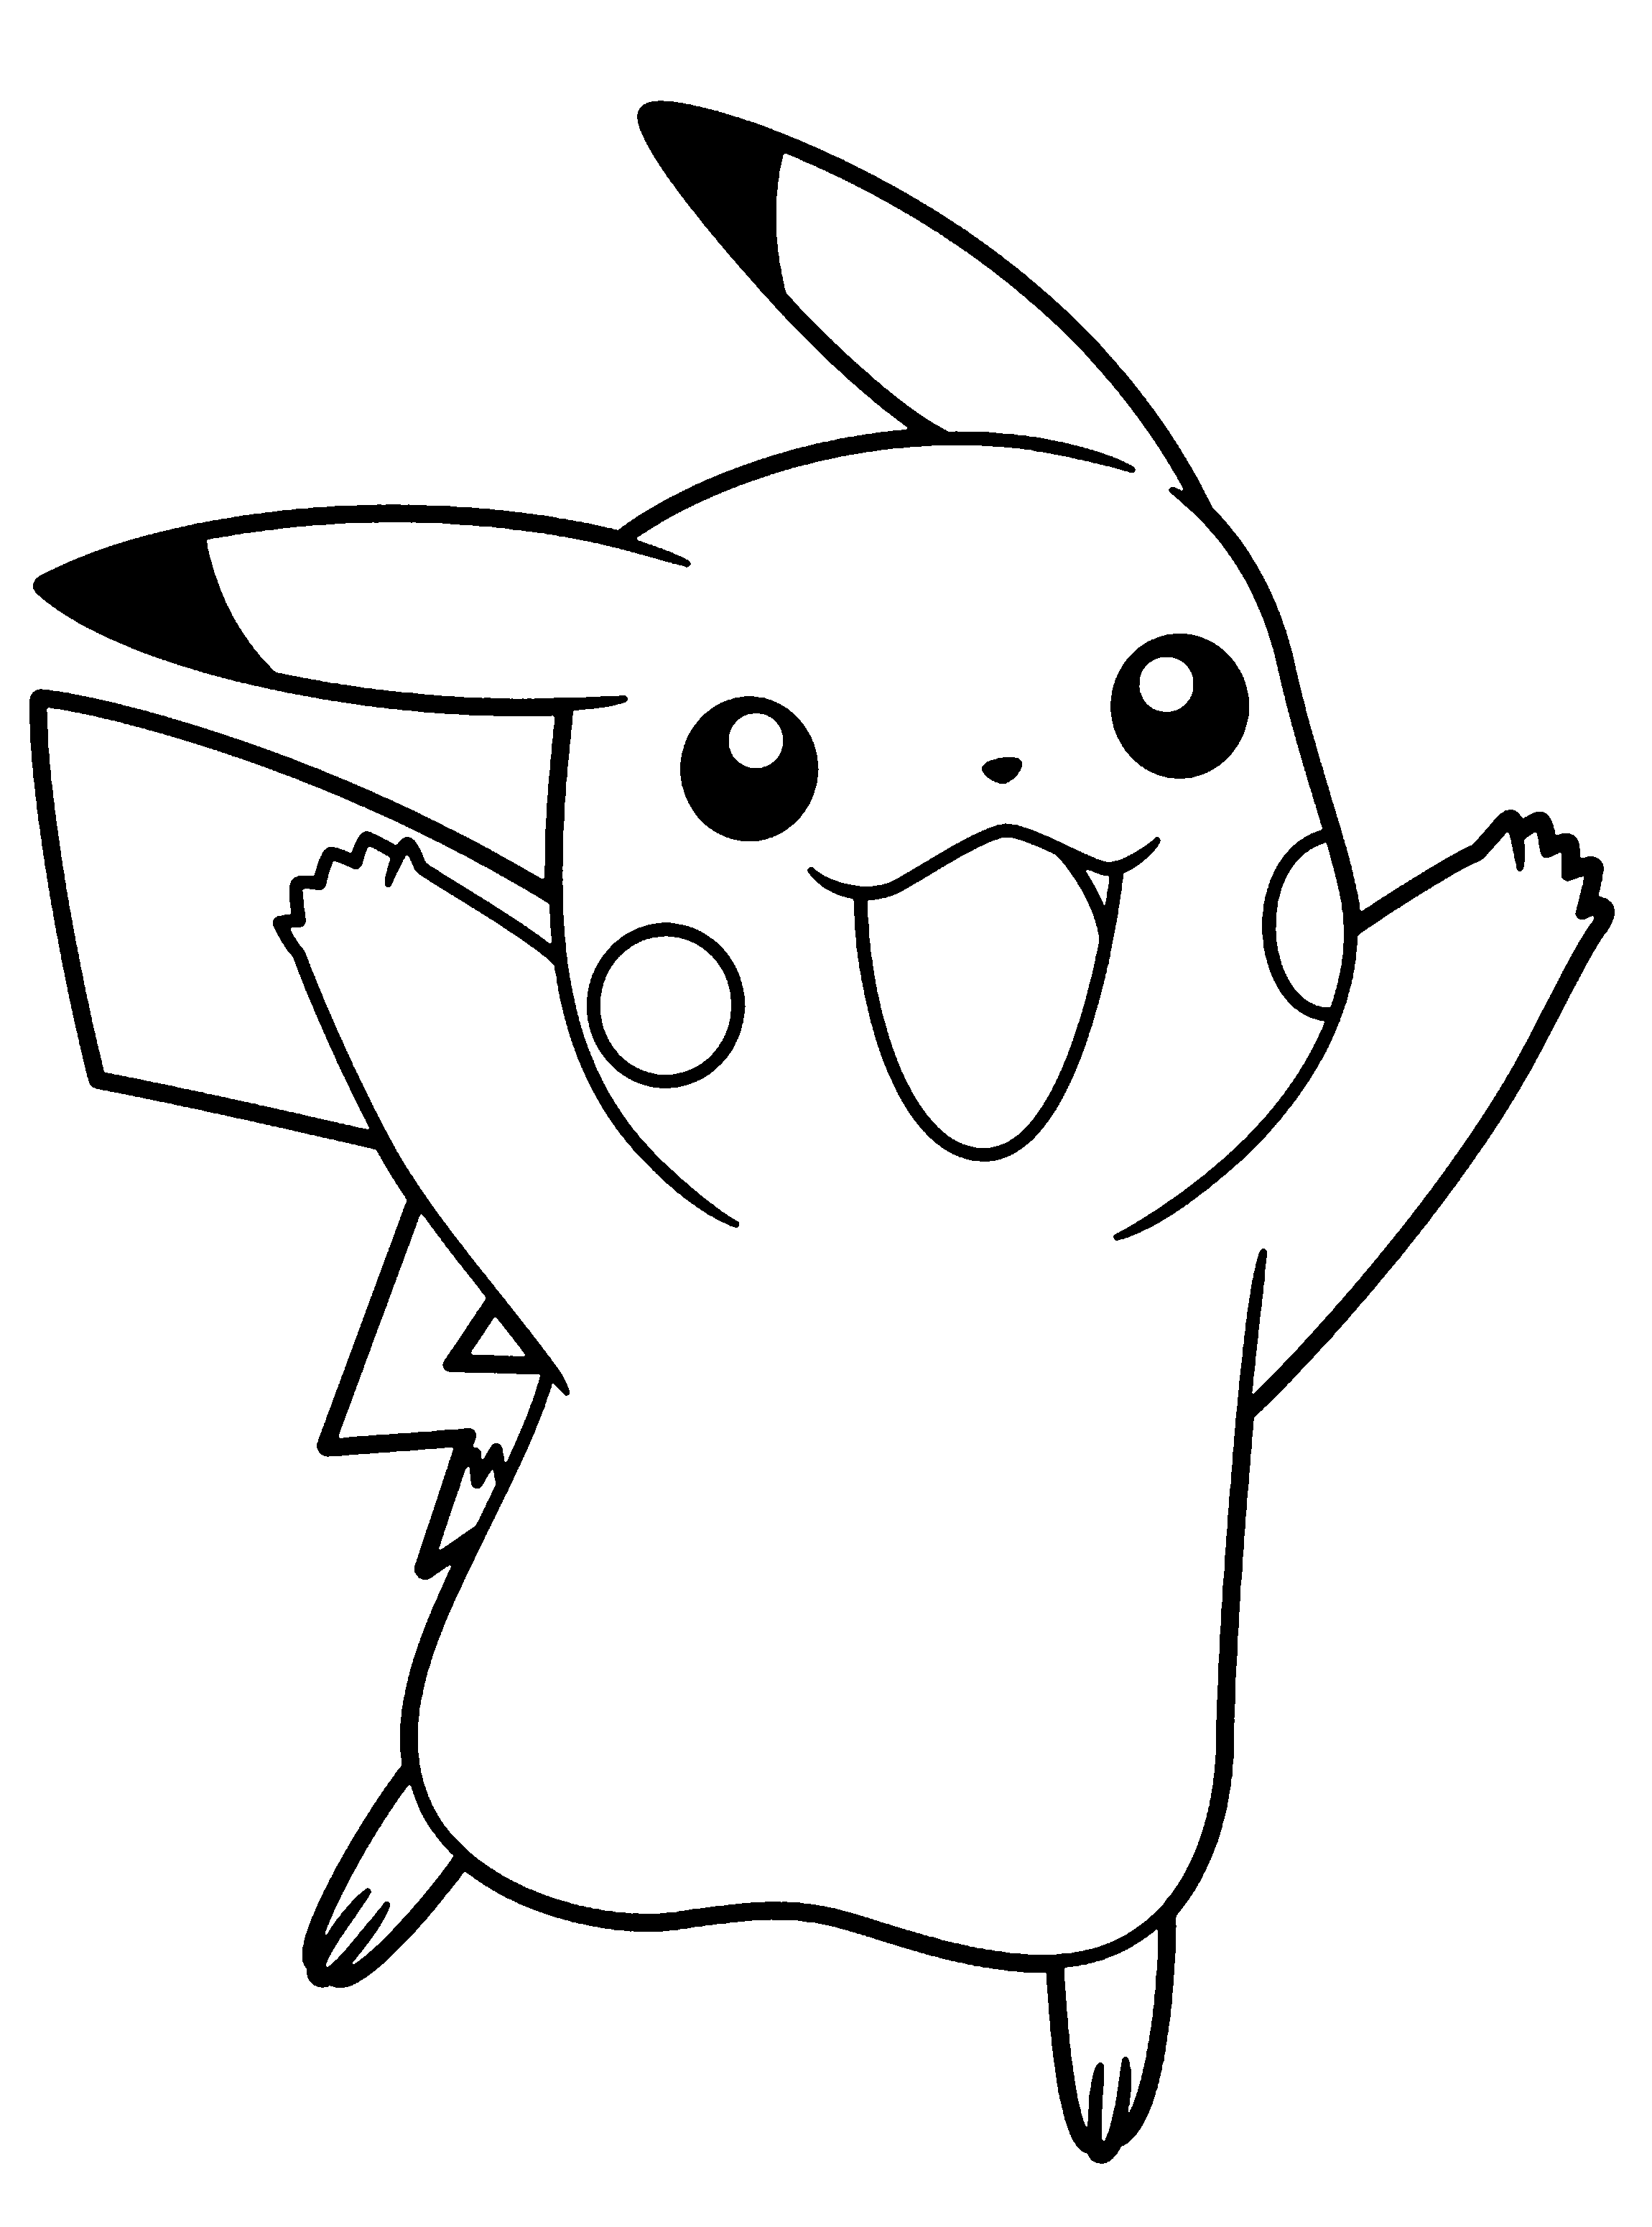 Pokemon Jumping Excited Coloring Pages For Kids Printable